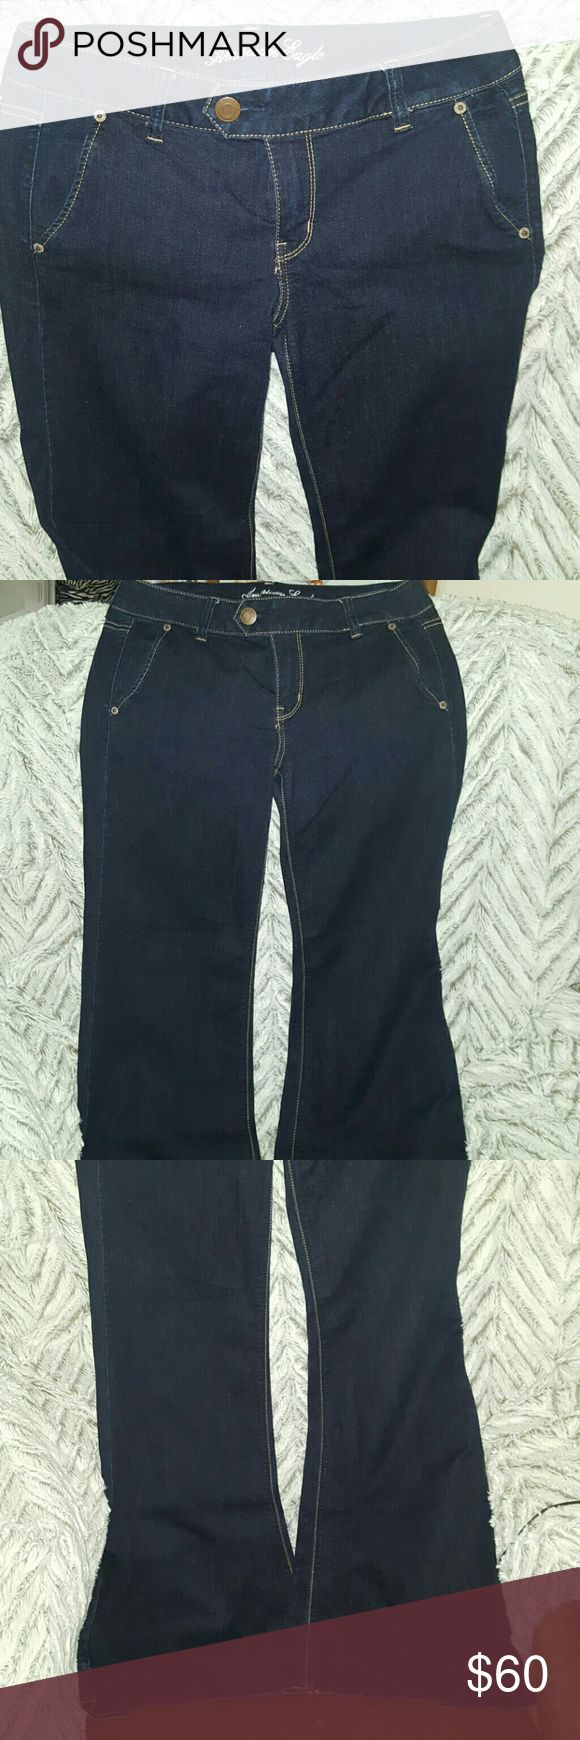 TROUSER JEANS ~ American Eagle New without Tags TROUSER JEANS ~ American Eagle New without Tags ~ Size 8 ~ I 98% cotton 2% spandex. Perfect for casual or dressy wear. A hard to find style, so be quick on the purchase! I ship daily. American Eagle Outfitters Jeans Flare & Wide Leg